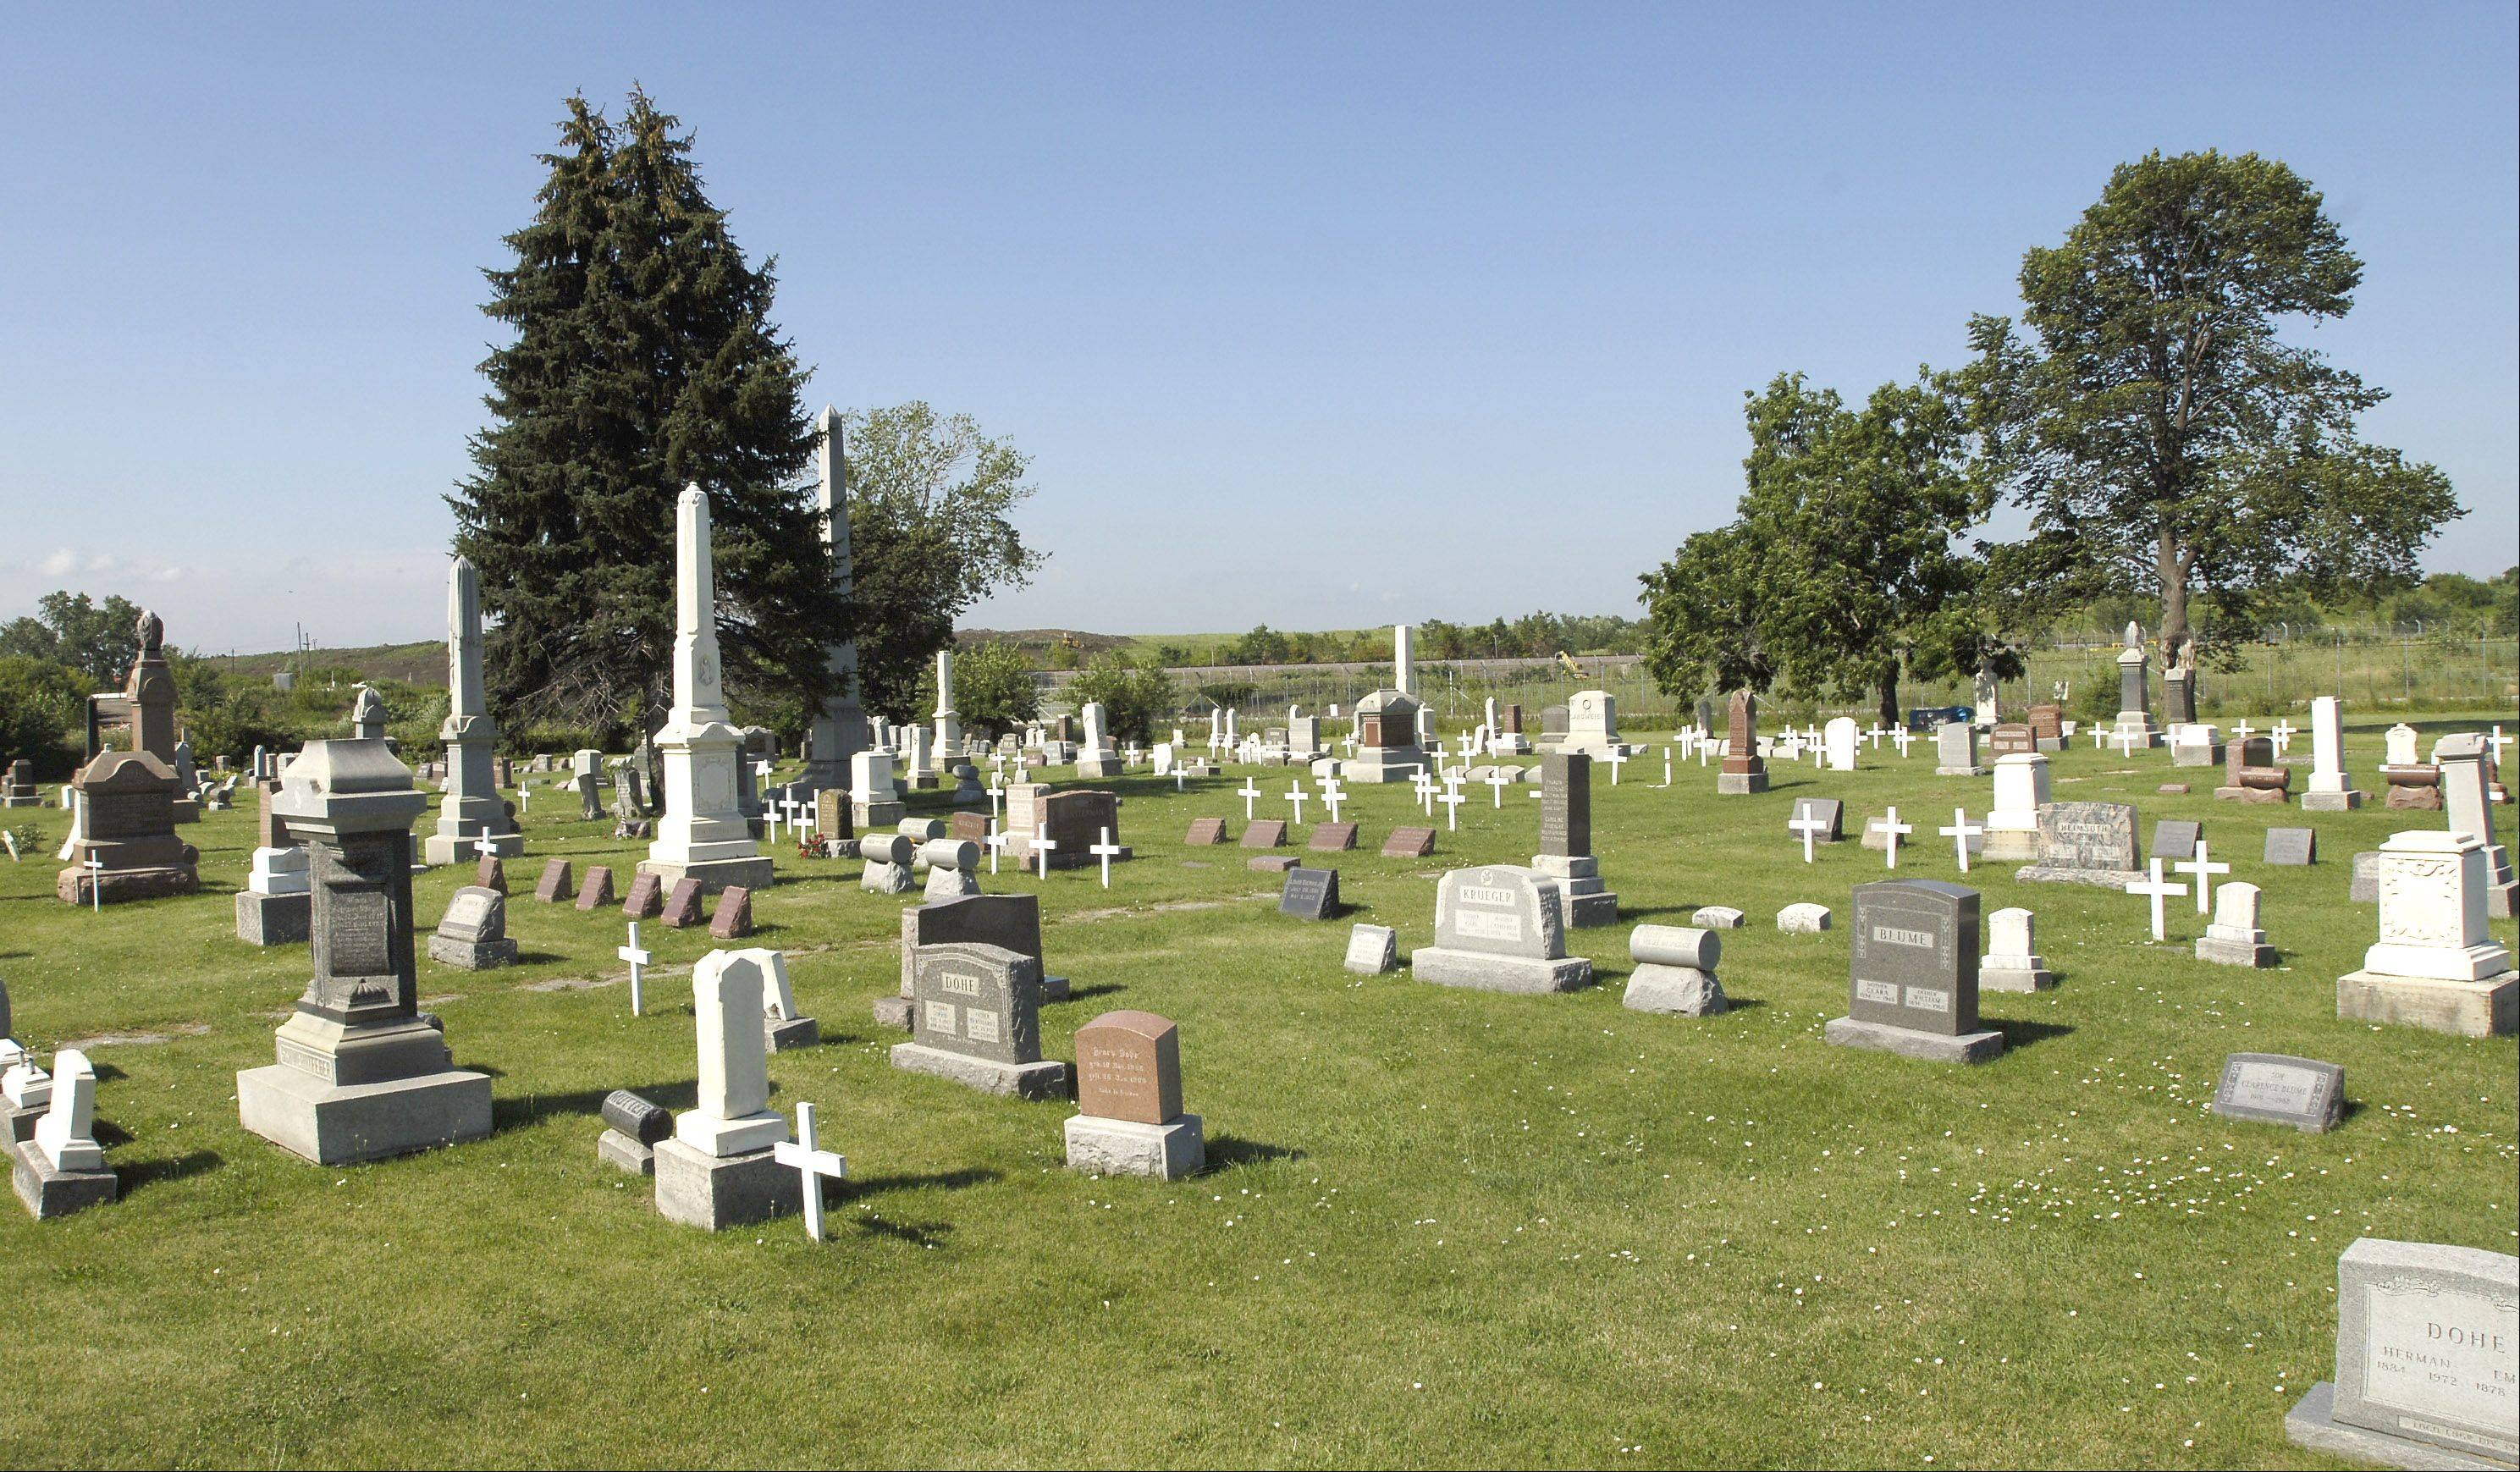 A Bensenville church that once operated the St. Johannes Cemetery near O'Hare International Airport was awarded $1.3 million in a settlement with the city of Chicago, which acquired the 5-acre site in 2010 as part of eminent domain proceedings.